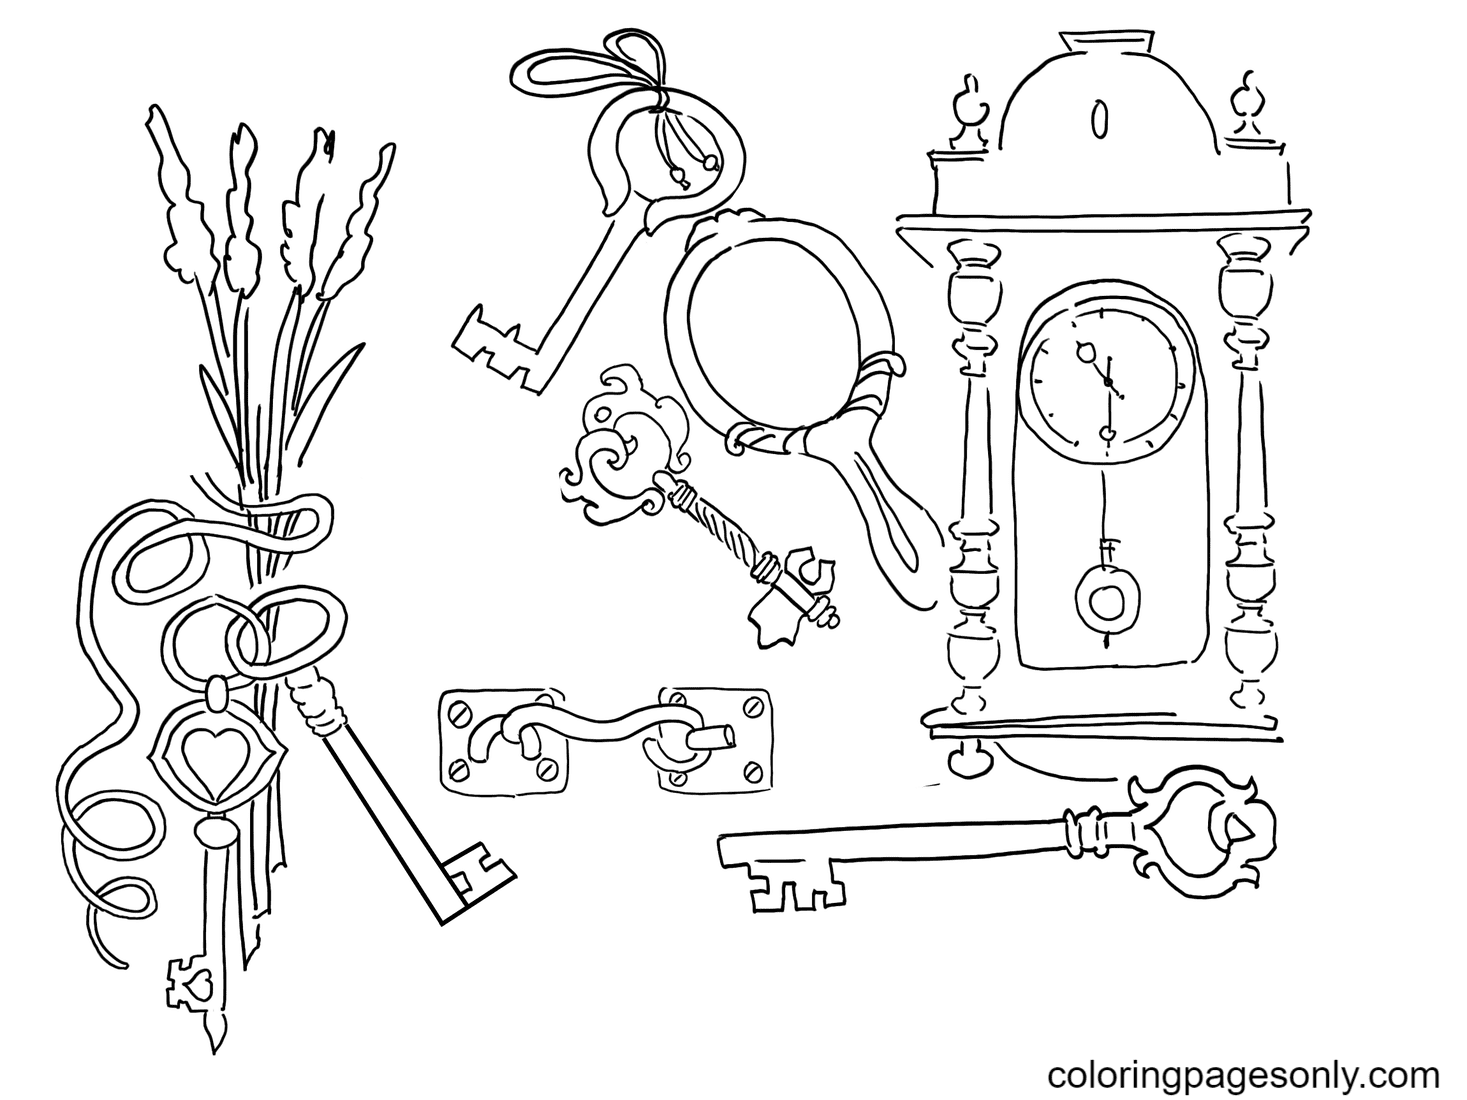 Keys For Children Free Coloring Page